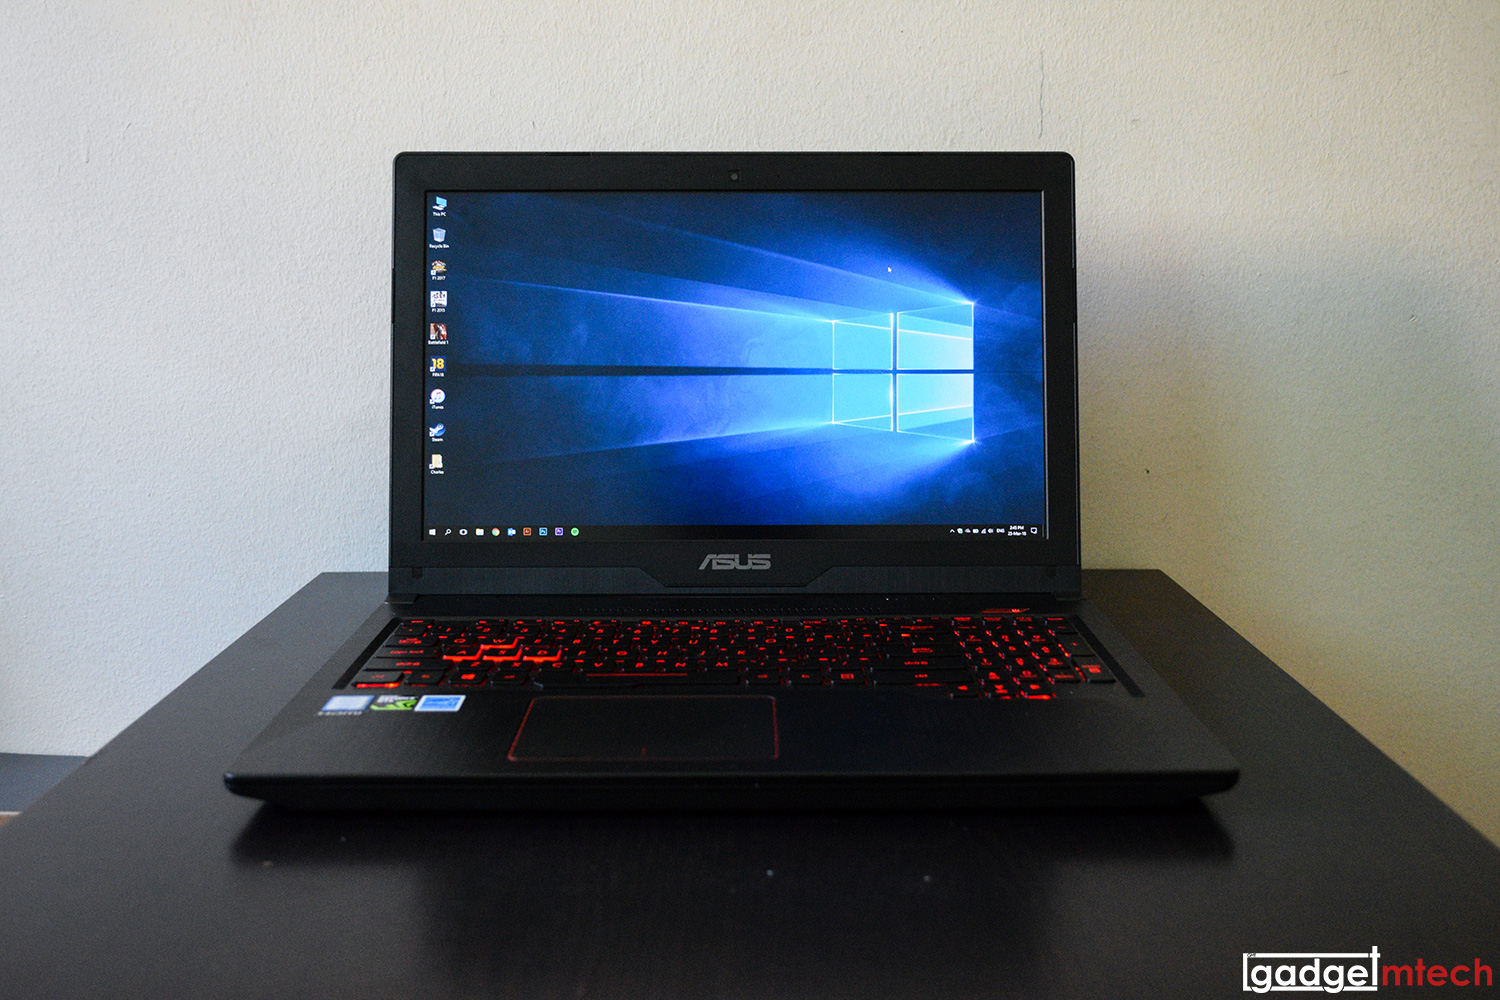 Asus Fx503 Review Non Rog Gaming Laptop Gadgetmtech